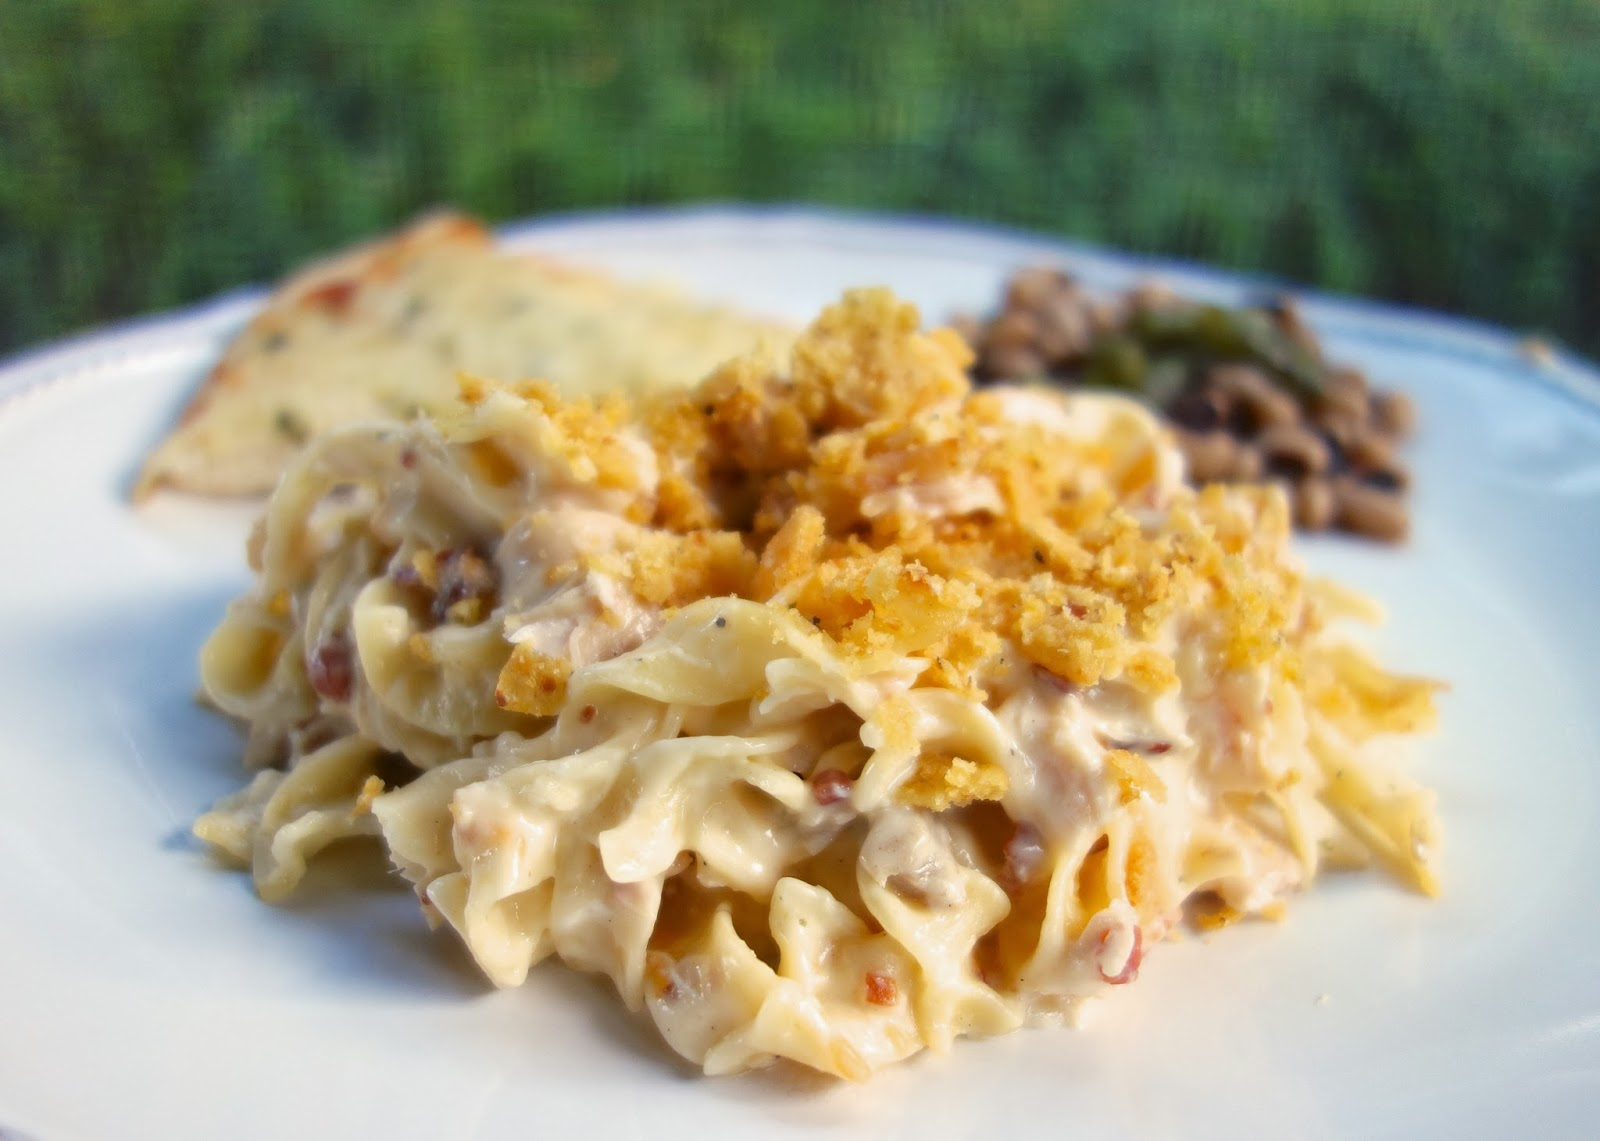 Out Chicken Noodle Casserole Recipe - chicken, noodles, chicken ...